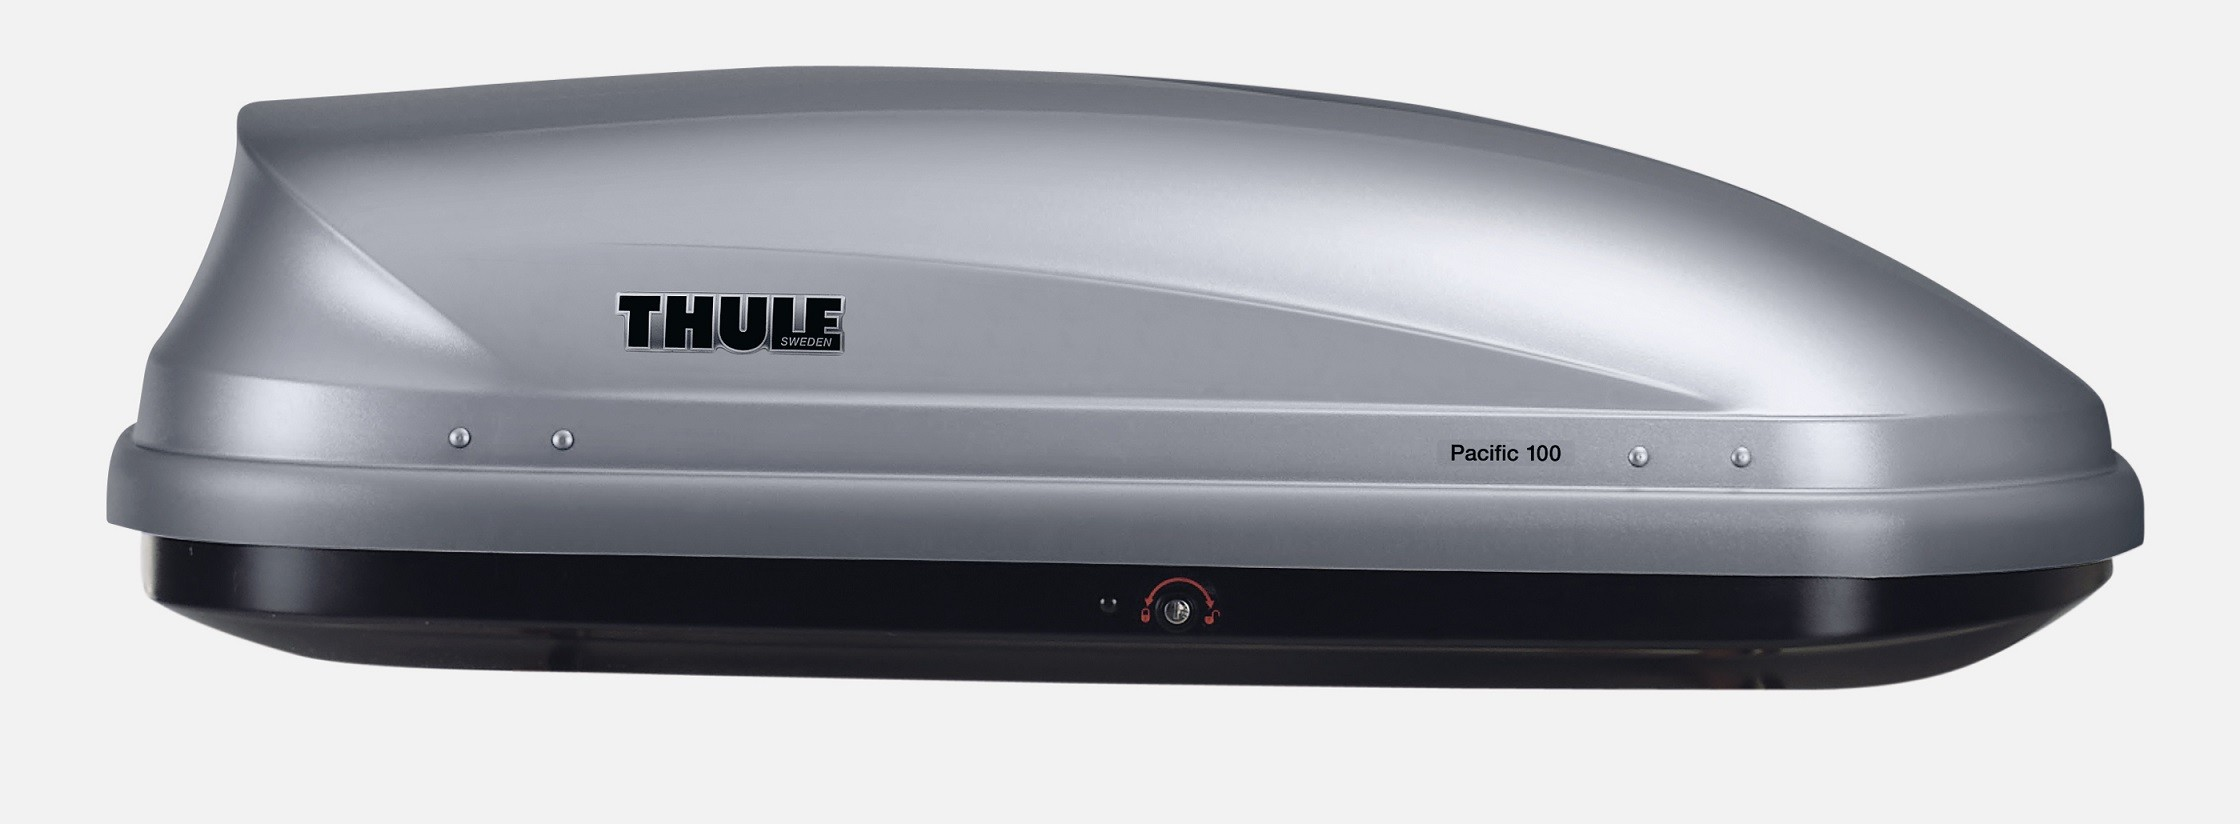 Thule Pacific 100 Roof Box By Thule For 163 235 00